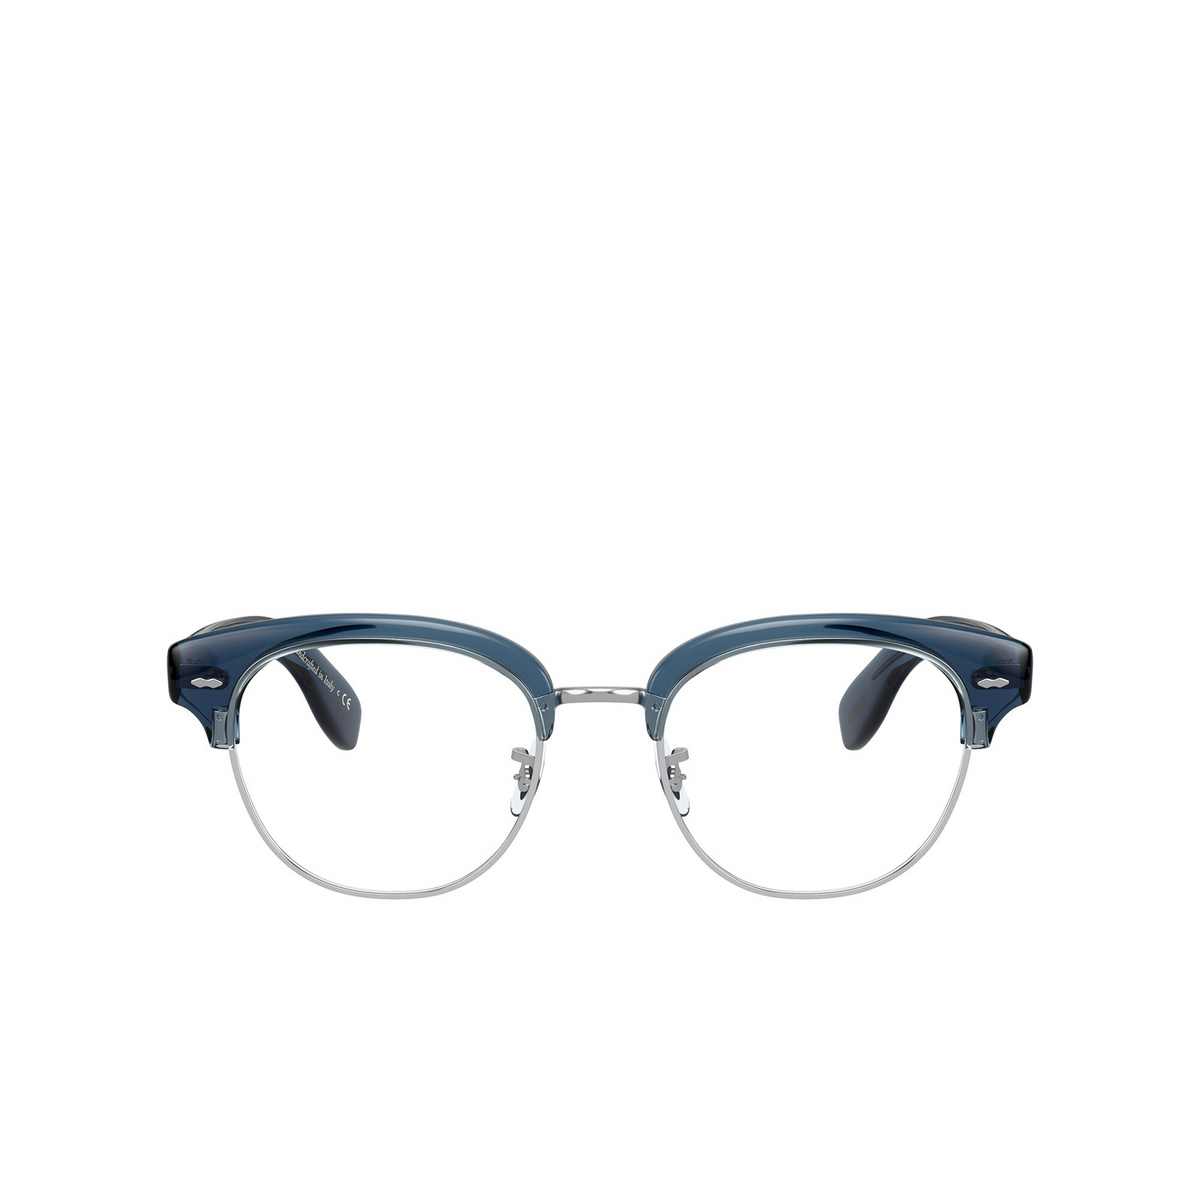 Oliver Peoples® Square Eyeglasses: Cary Grant 2 OV5436 color Deep Blue 1670 - front view.